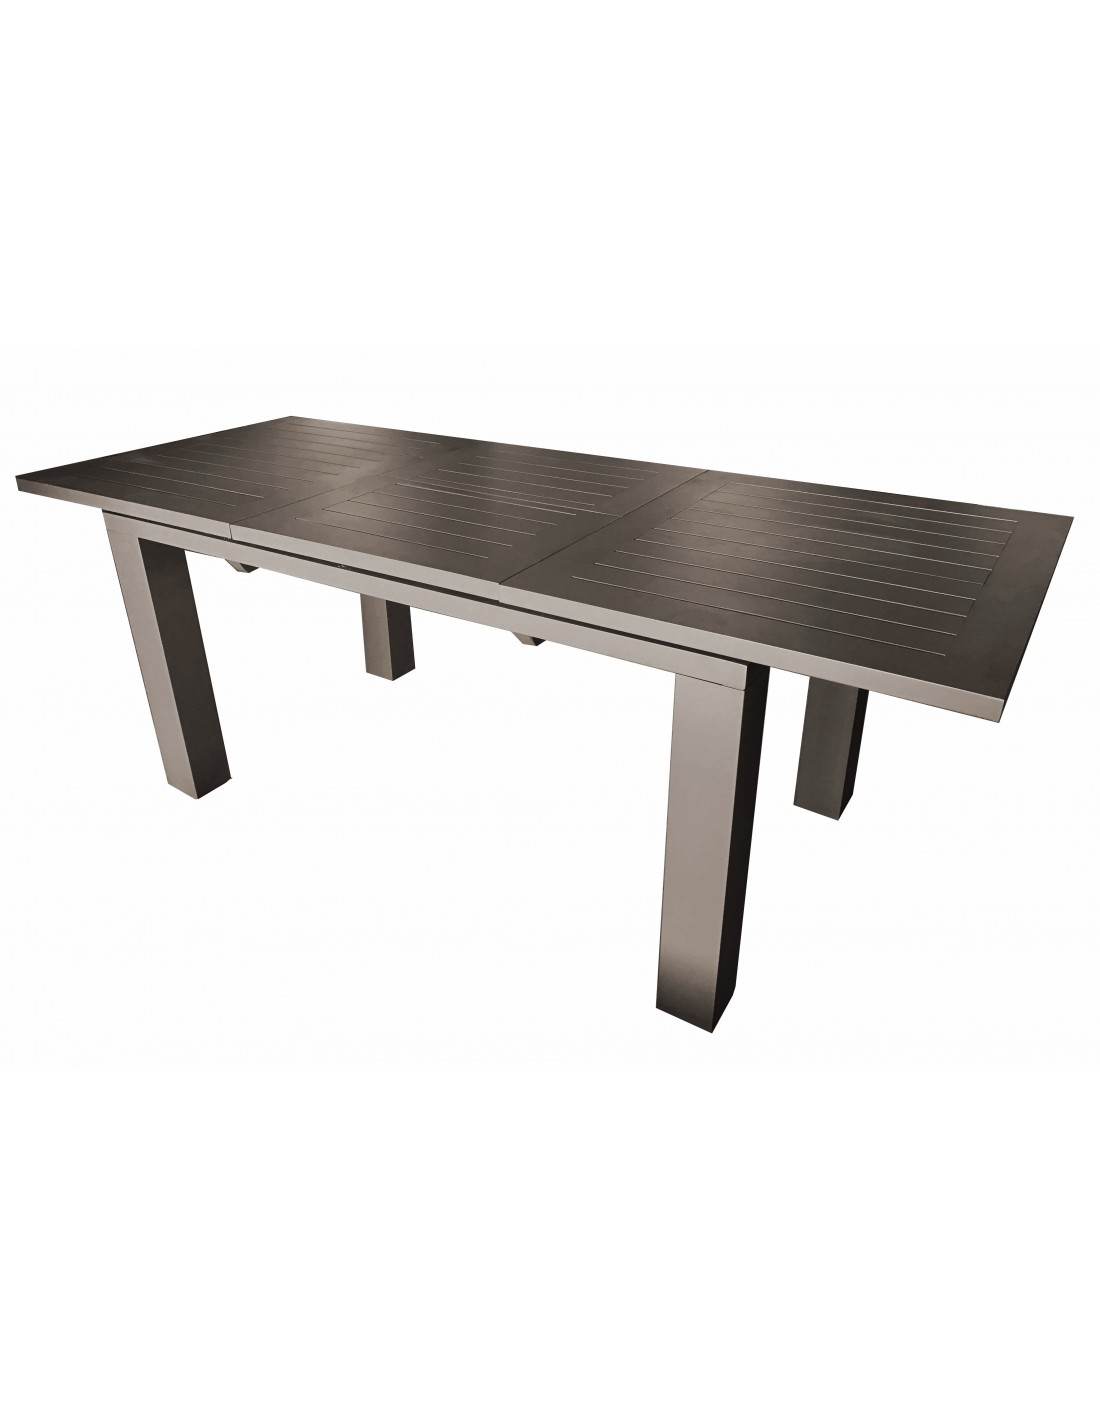 Table de jardin elisa 140 200x76 cm en aluminium proloisirs - Table de jardin rallonge papillon ...